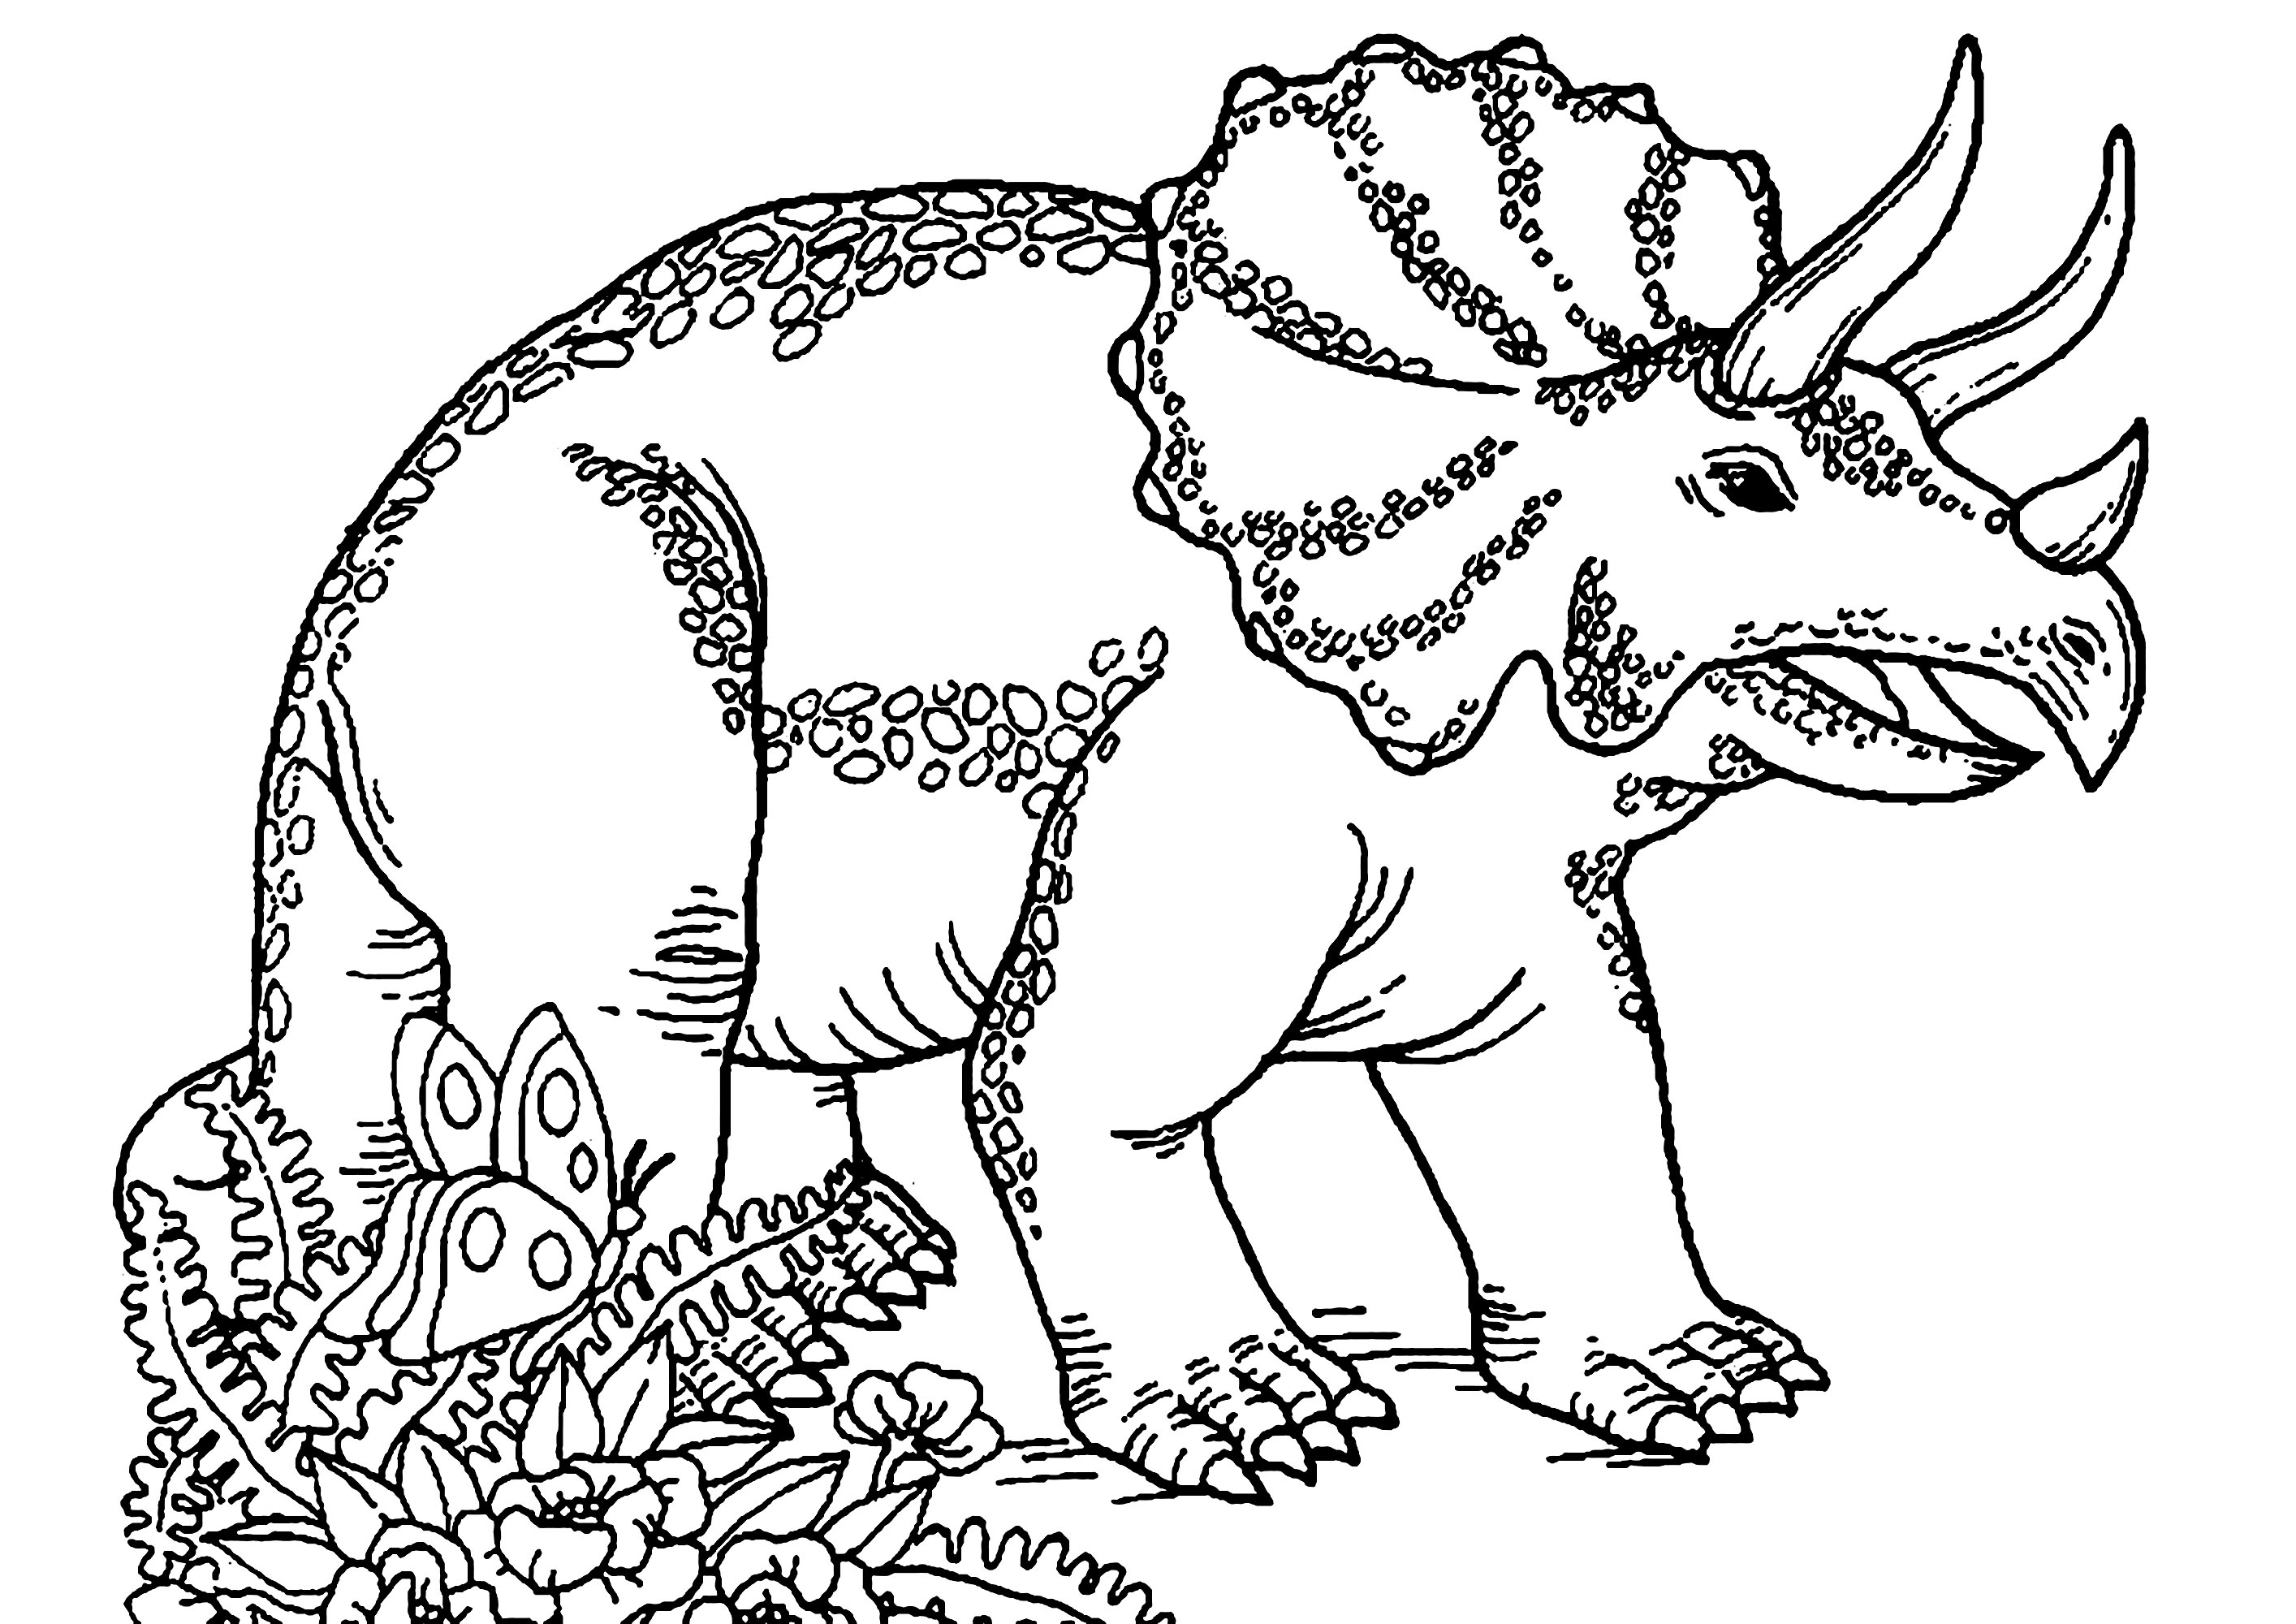 dinosaur coloring pages for kids dinosaur coloring pages to download and print for free kids dinosaur for coloring pages